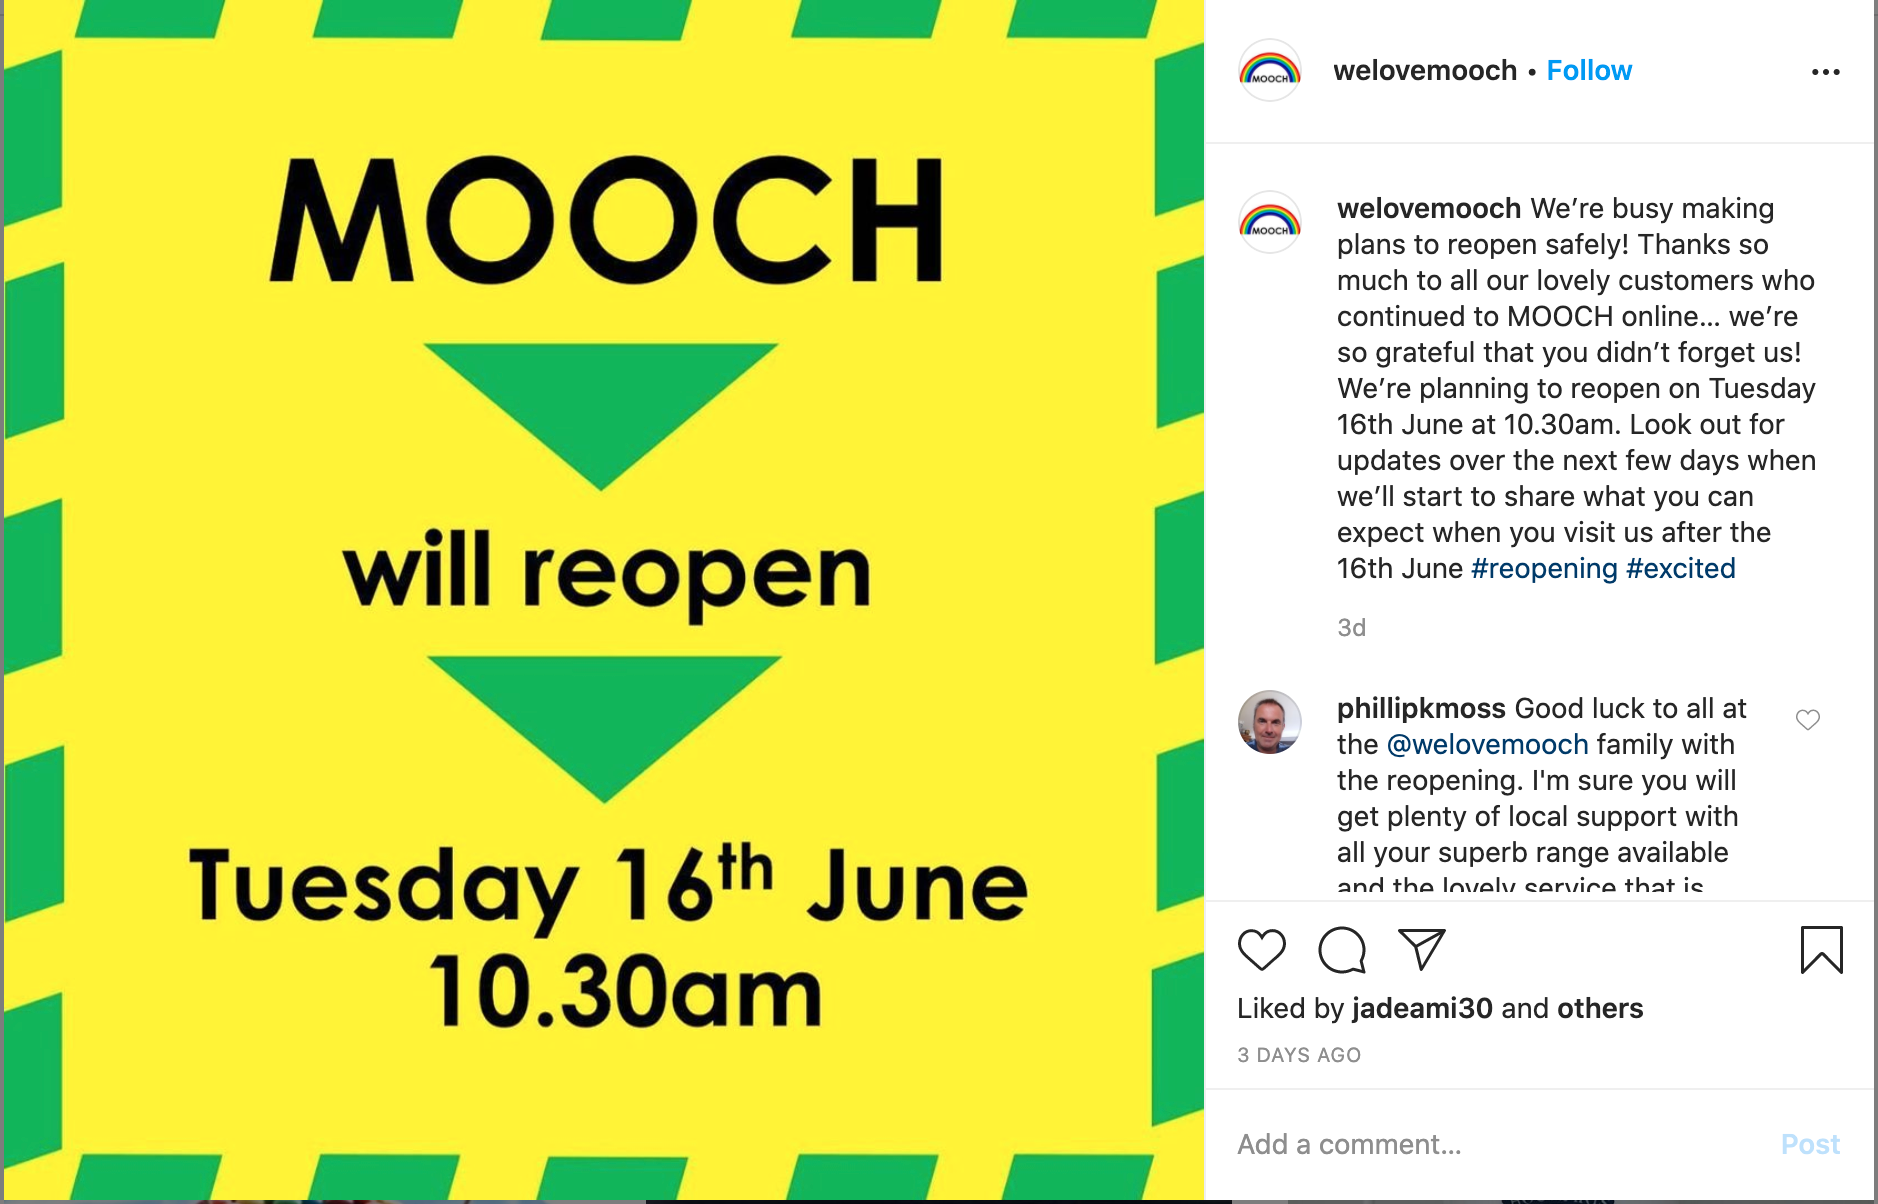 Above: A welcome post on Mooch's Instagram feed.